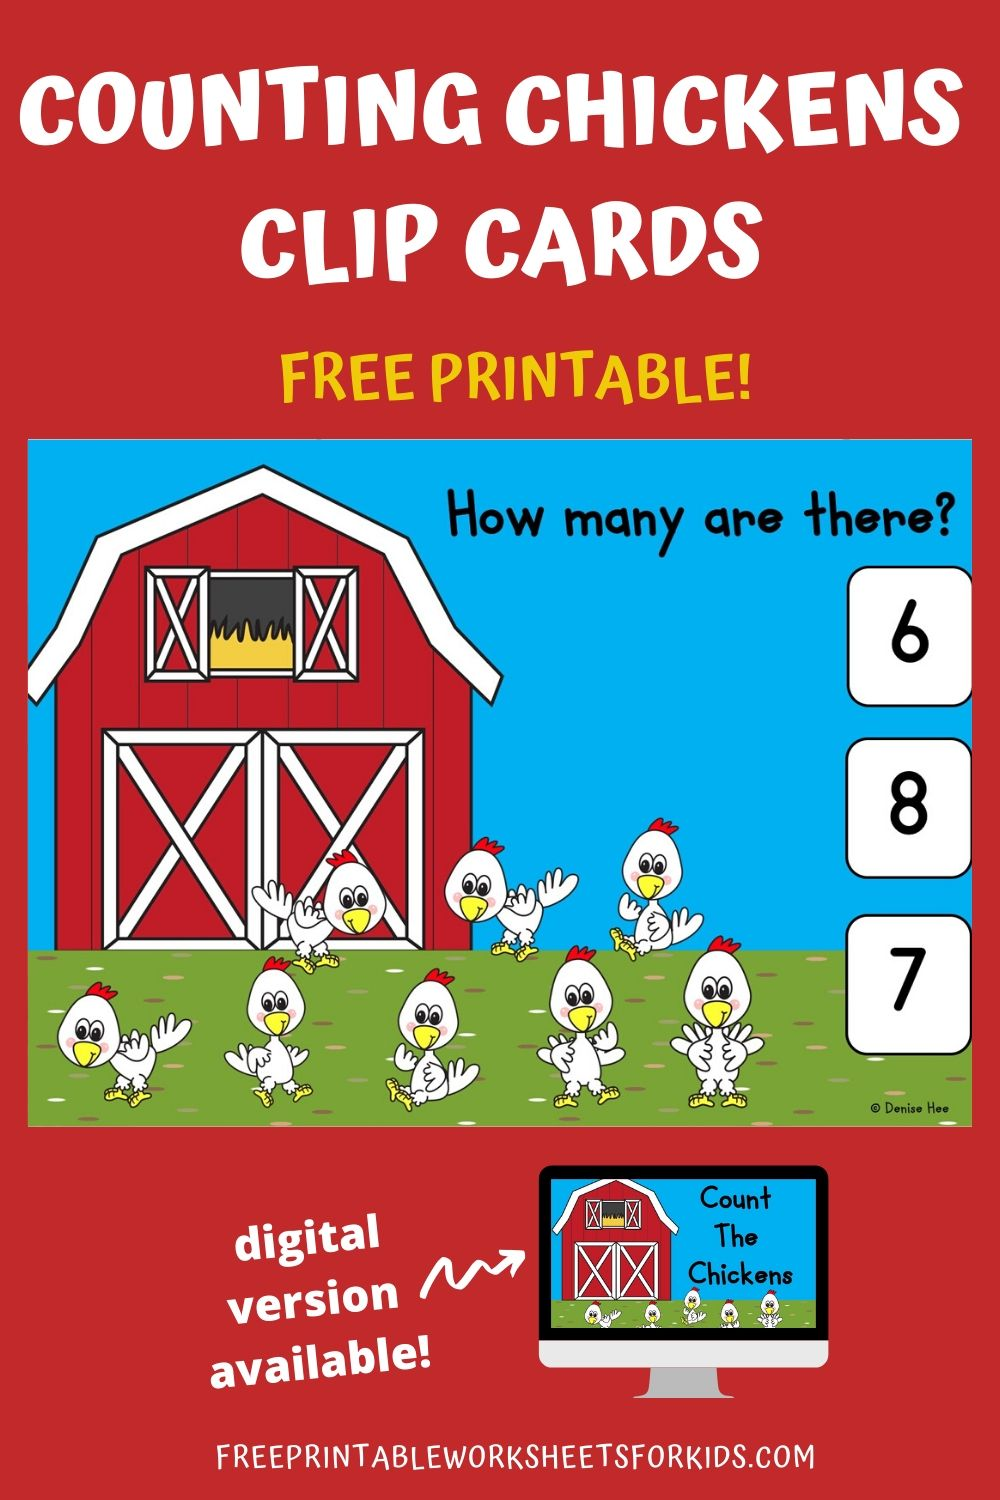 Count The Chickens 1-10 | Free Printable Worksheets For Kids | I grew up with chickens as pets and my son absolutely loves his field trips to the farm. He comes back all excited talking about all the animals he sees. We both share a love of animals so this set of chicken counting clip cards is one of his favorites. Other Printable Animal Centers and Worksheets Counting Colorful Bugs - Learn color words and counting in this fun book for beginner readers. Frog Life Cycle - 3 activities included in this pack perfect for Springtime. Frog Number Hop Game - Add and subtract as kids race to the pond. Bumblebee Addition Game - Solve the sum so the bee lands on the correct flower. Animal Alphabet Mazes - Work on letter recognition with these 26 mazes. Counting Clip Cards Setup For this activity you will need: Paper Printer Wooden pegs or clothespins Optional: laminator If you don't have the materials needed, don't sweat! You can get it delivered to your doorstep really quickly with Amazon Prime. You can get a 30-day free trial here.  Playing This Fun Counting Game Print out the pages and cut them as needed into individual clip cards. I would suggest laminating them so you can use them again and again. Lay out the cards with some wooden pegs and that's it! Your kids are now ready for some fun math :) Additionally, you could provide some small tokens or counters that your student can use to help them count. They can place a counter over each worm to avoid counting them twice by mistake and to reinforce one to one correspondence. I have a large collection of Spring and Summer Counting Clip Cards. You can find more to complement this activity here. Pair Up This Summer Themed Math Activity Looking for more printable math and literacy activities for your farm themed learning week? Check out my pack of 10 Farm Themed Centers here. Looking for digital task cards? If you're using digital task cards in your classroom, you can find the Boom Cards version of this game in my Boom Learning shop (under Kool Kids Games) or in my Teachers Pay Teachers store.